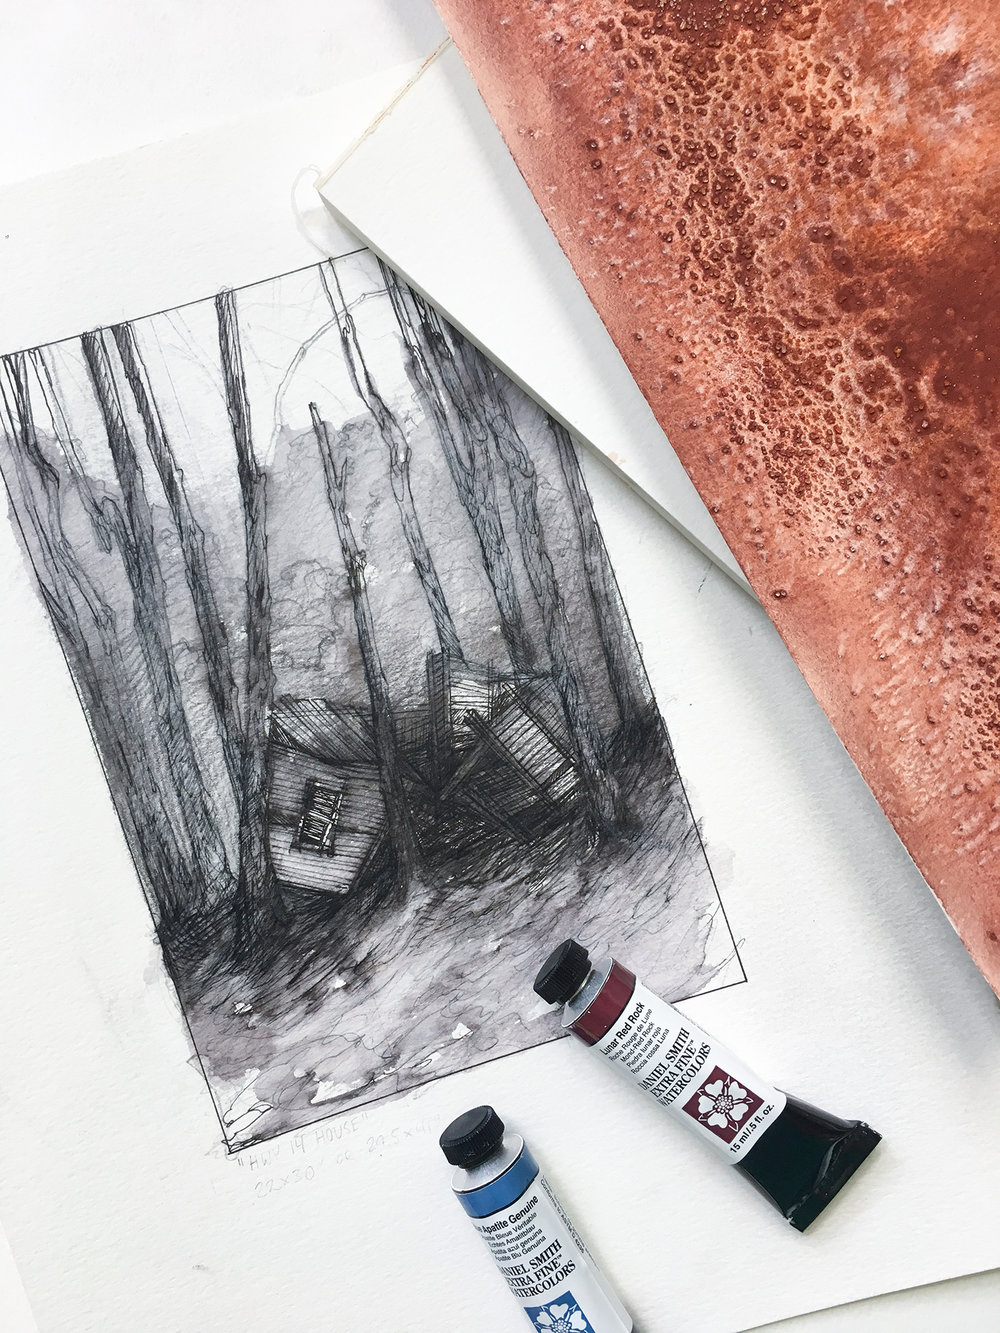 Ink washes are great because they help you see value shifts and identify the light source, especially if you are working from multiple images like I do.